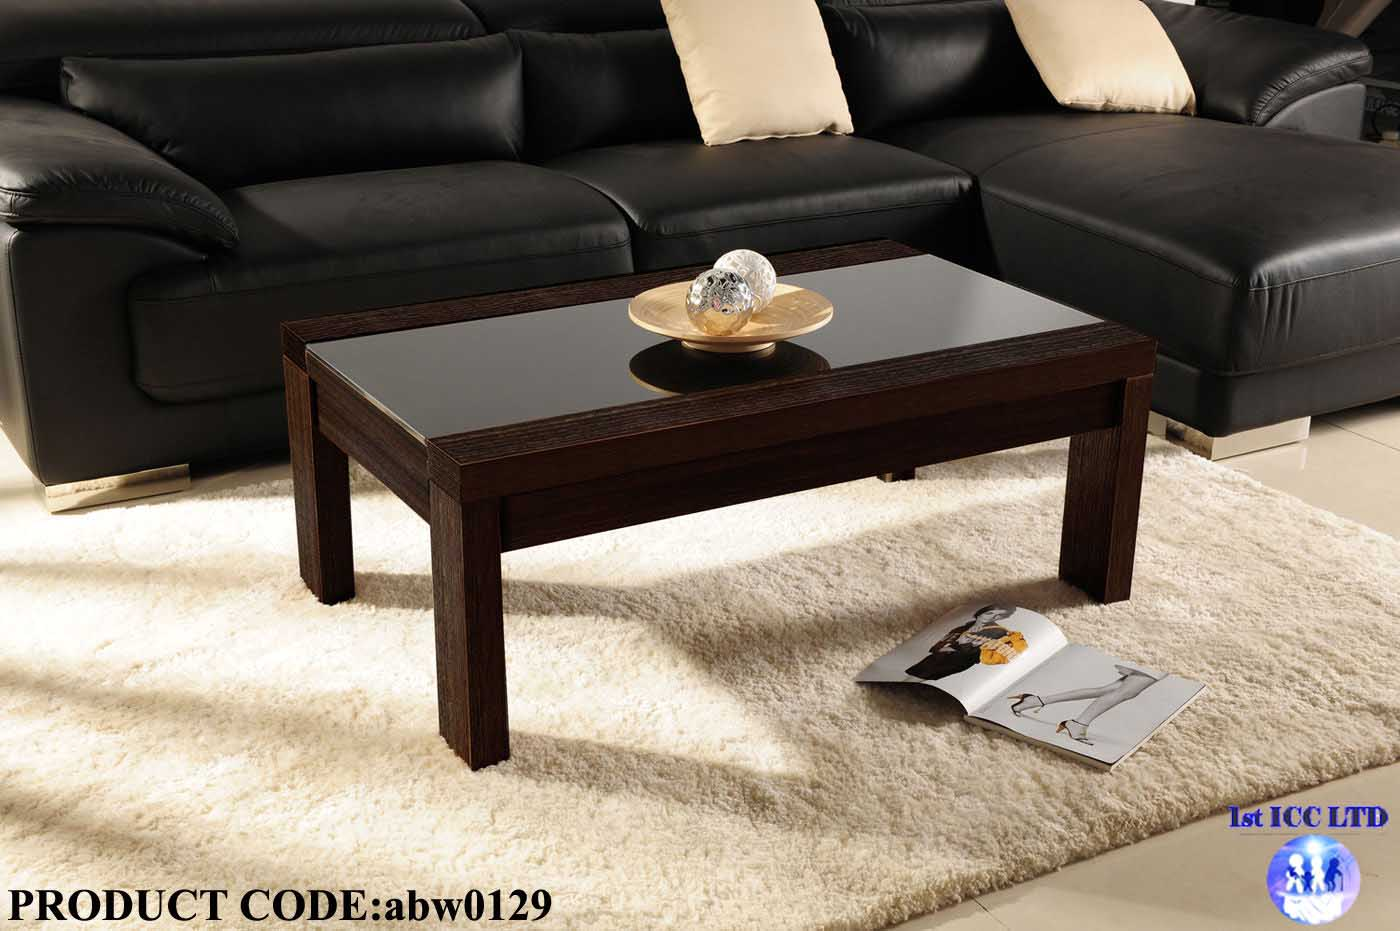 coffee tables ideas black espresso dark brown with sofa pillow cream rudibela themes carpet fur feather best end nest antique pedestal table styles used lazy boy chairs color rug